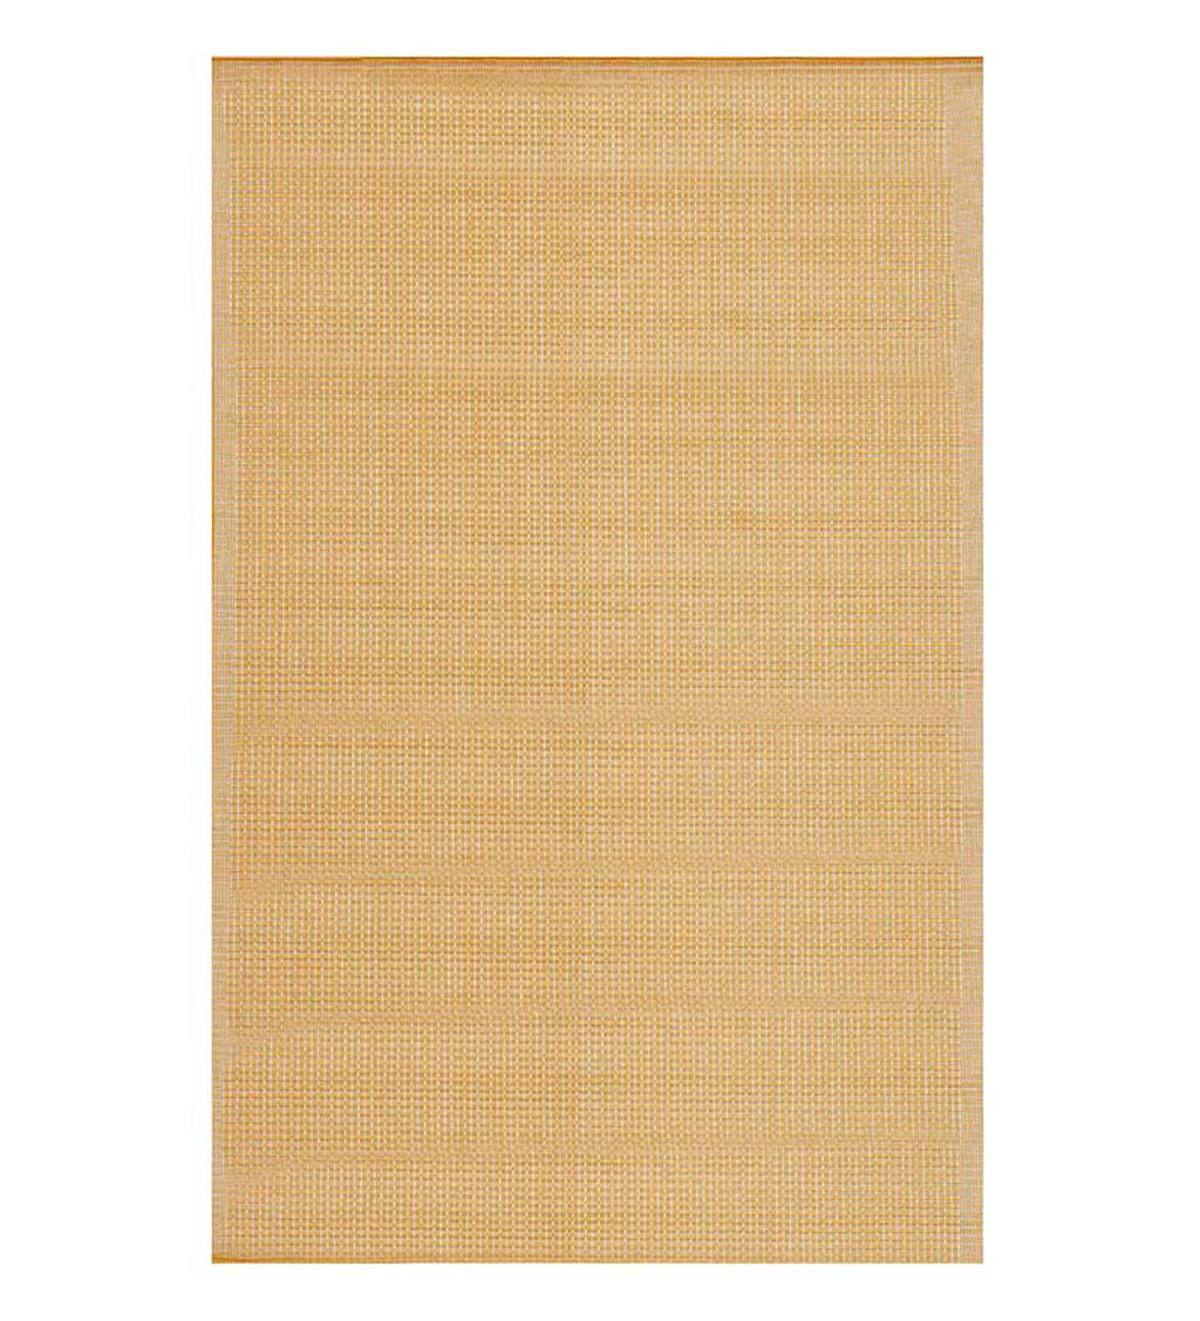 "Solid Color Indoor/Outdoor Polypropylene Rug, 7'10""x 9'10"" - Almond"